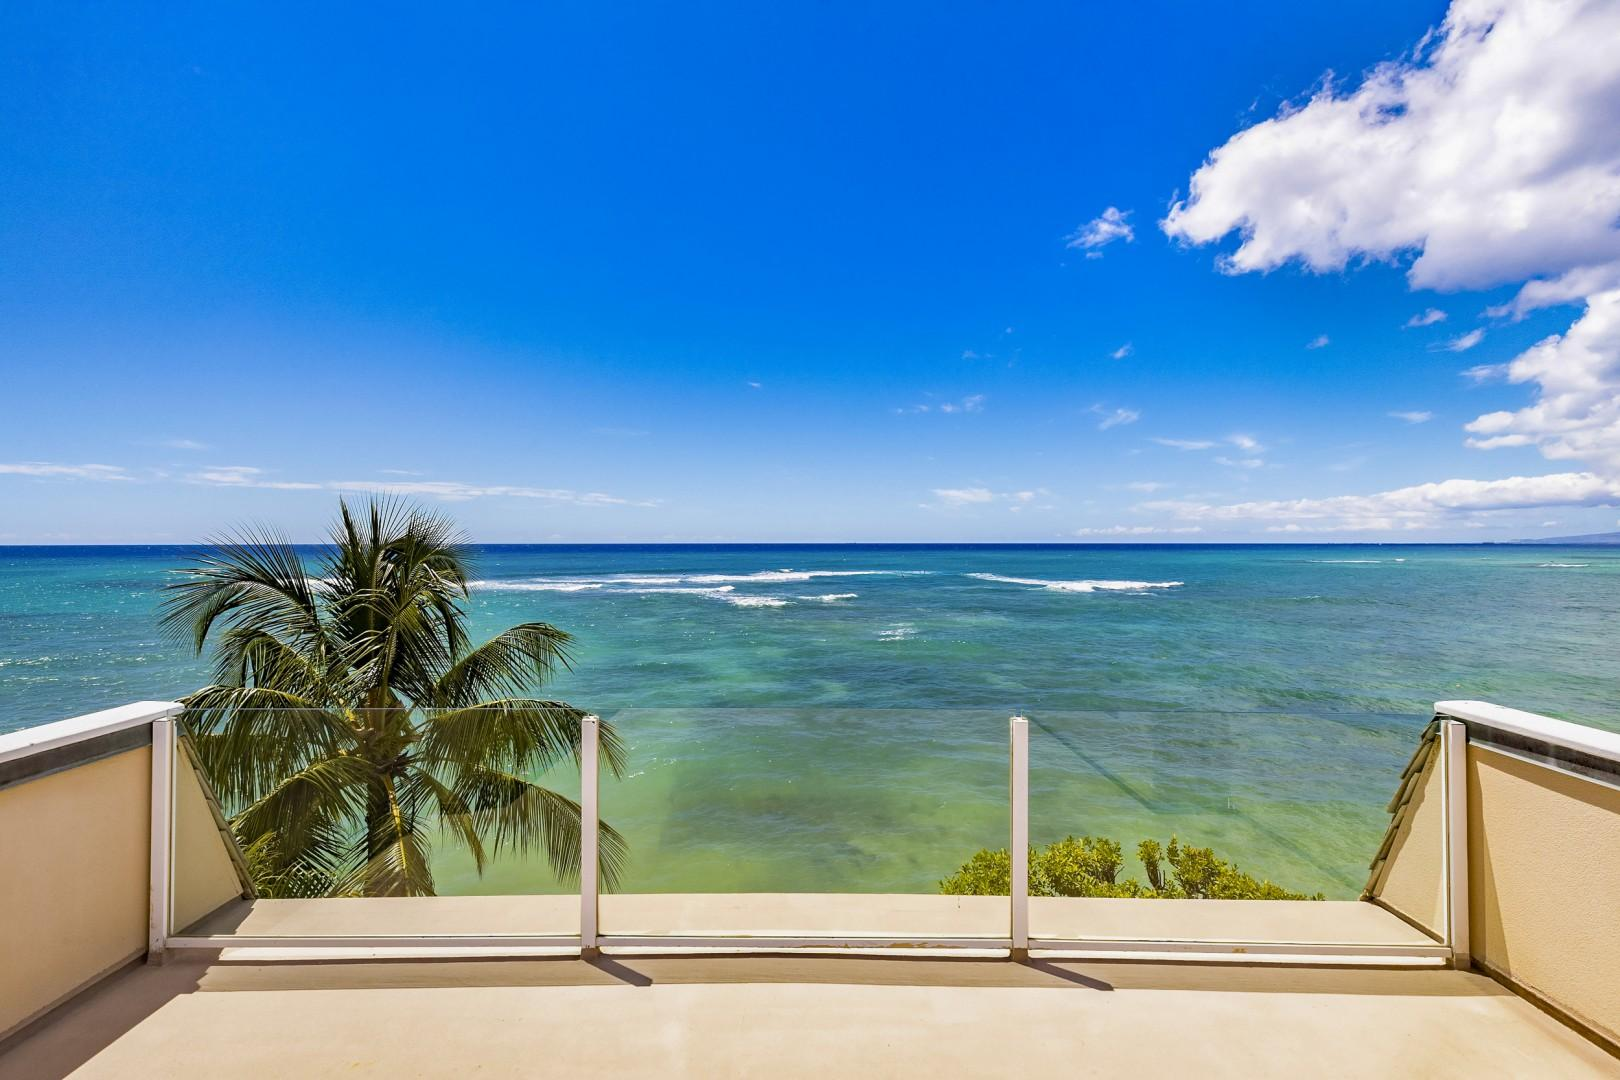 Oceanfront view from top of the home.